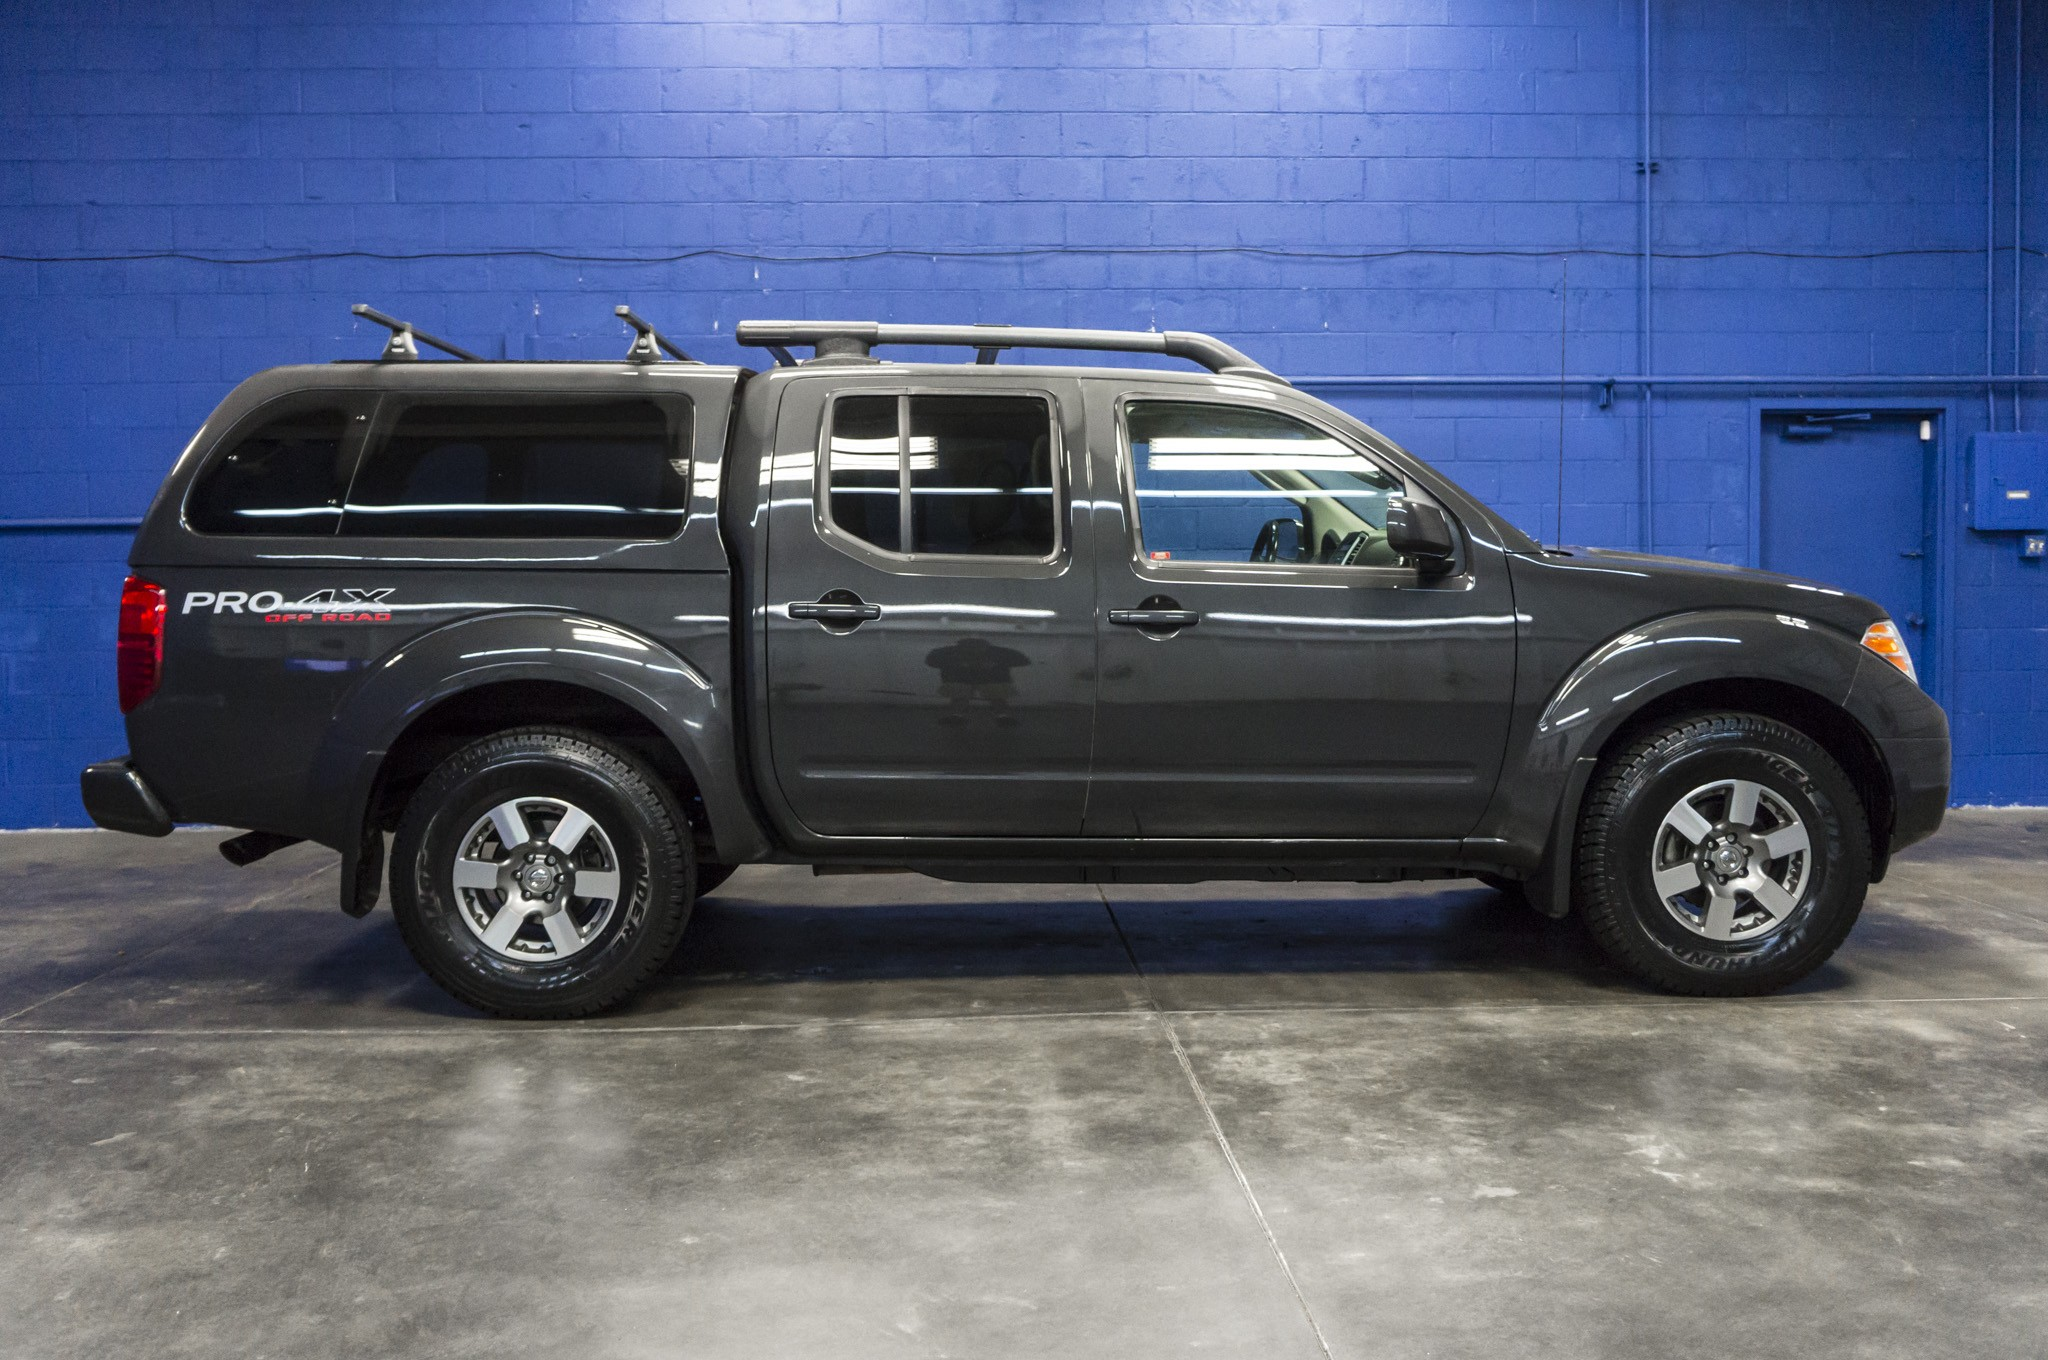 win nissan for version level size kit frontier page a image name larger jpg click views forums lift pro